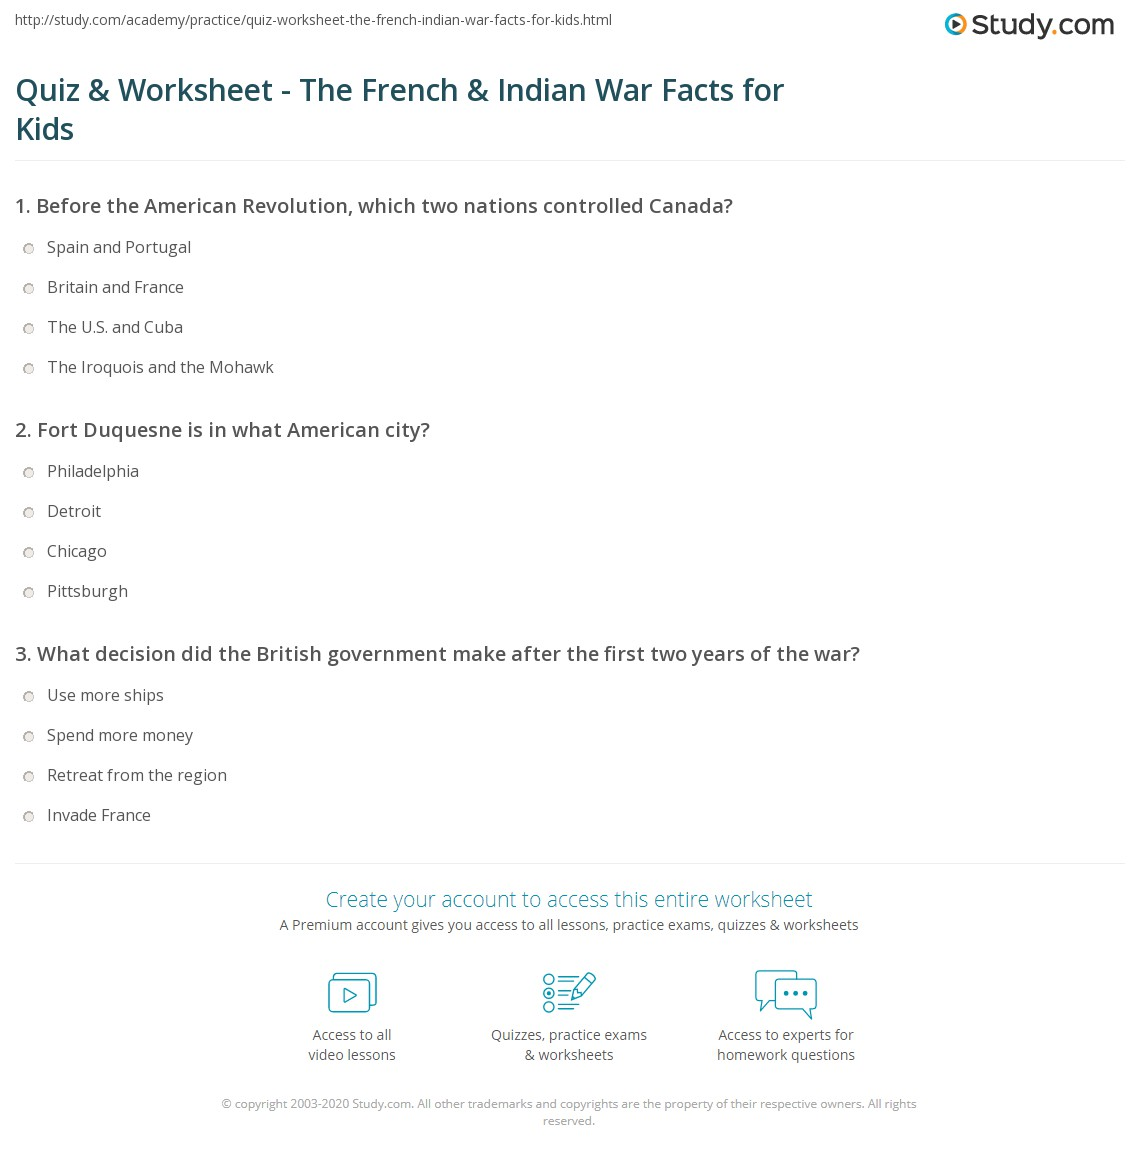 Quiz & Worksheet - The French & Indian War Facts for Kids | Study.com